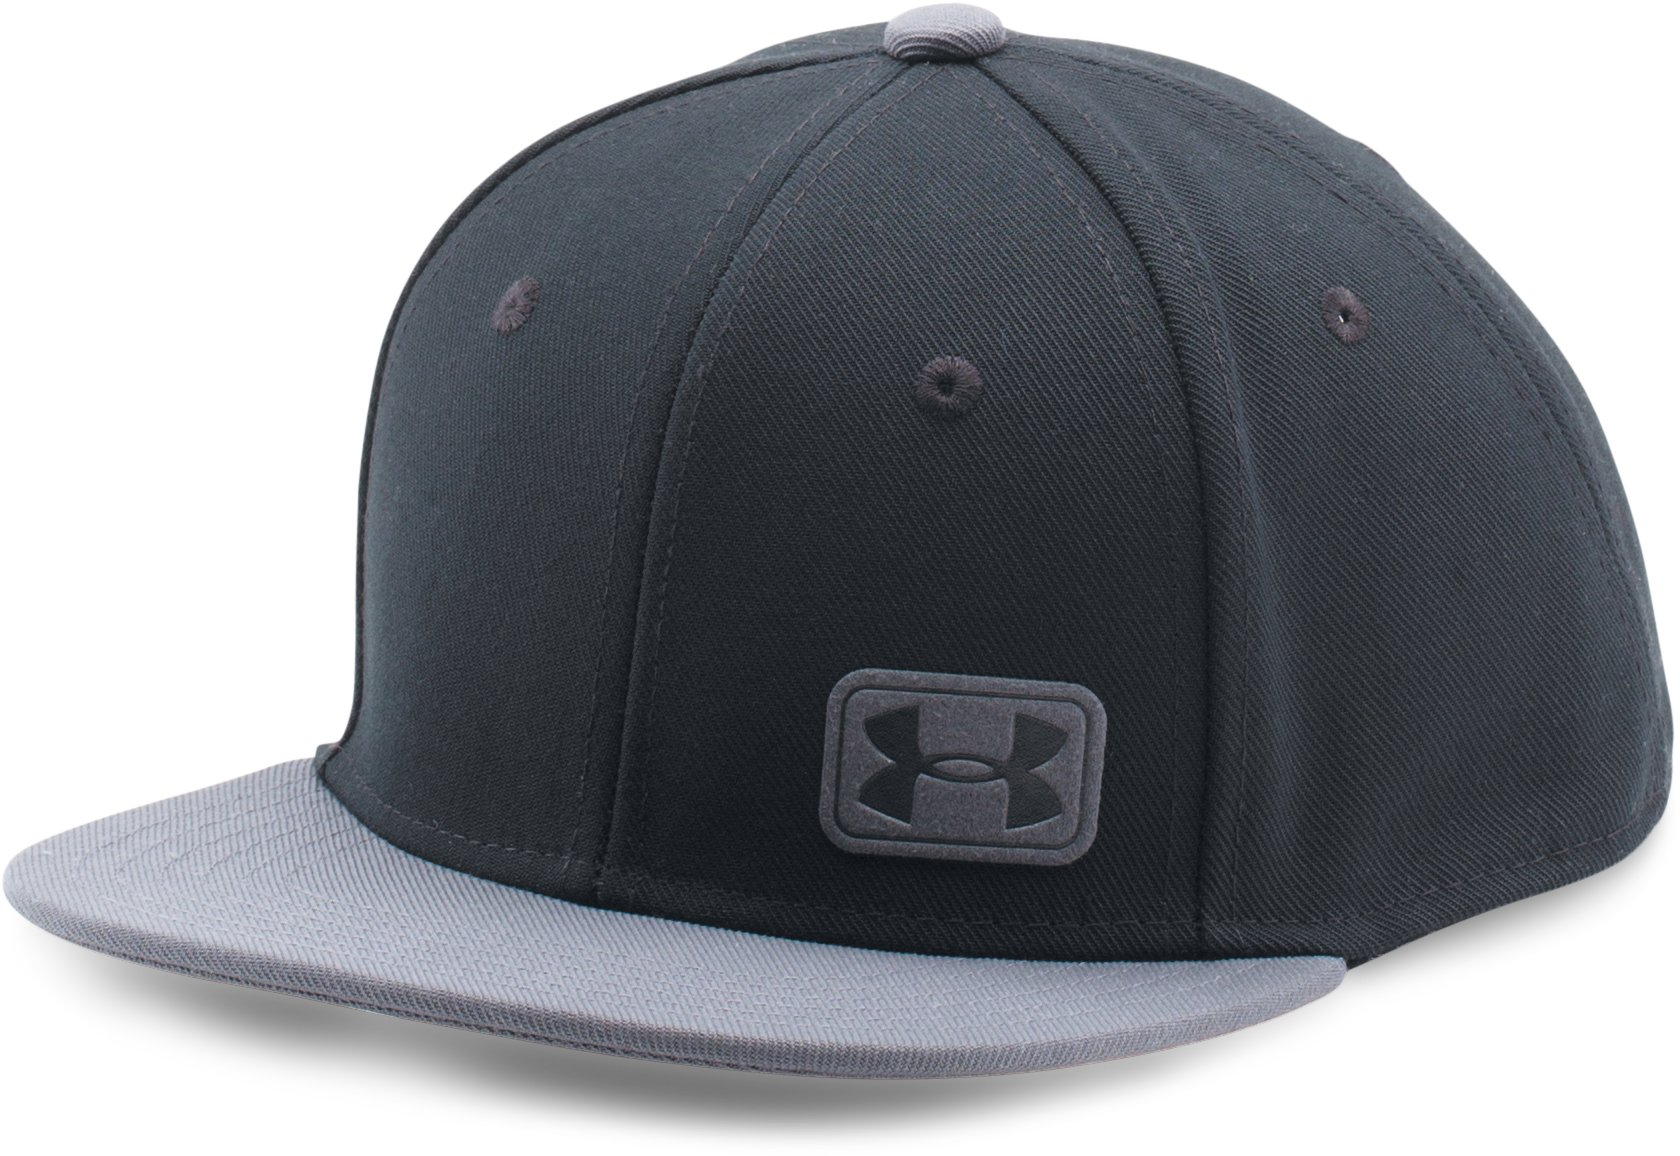 black snapback caps Boys' UA Core Snapback Cap I bought this for my son and he loves it!!...He loves the fit & comfort....It was a hit!